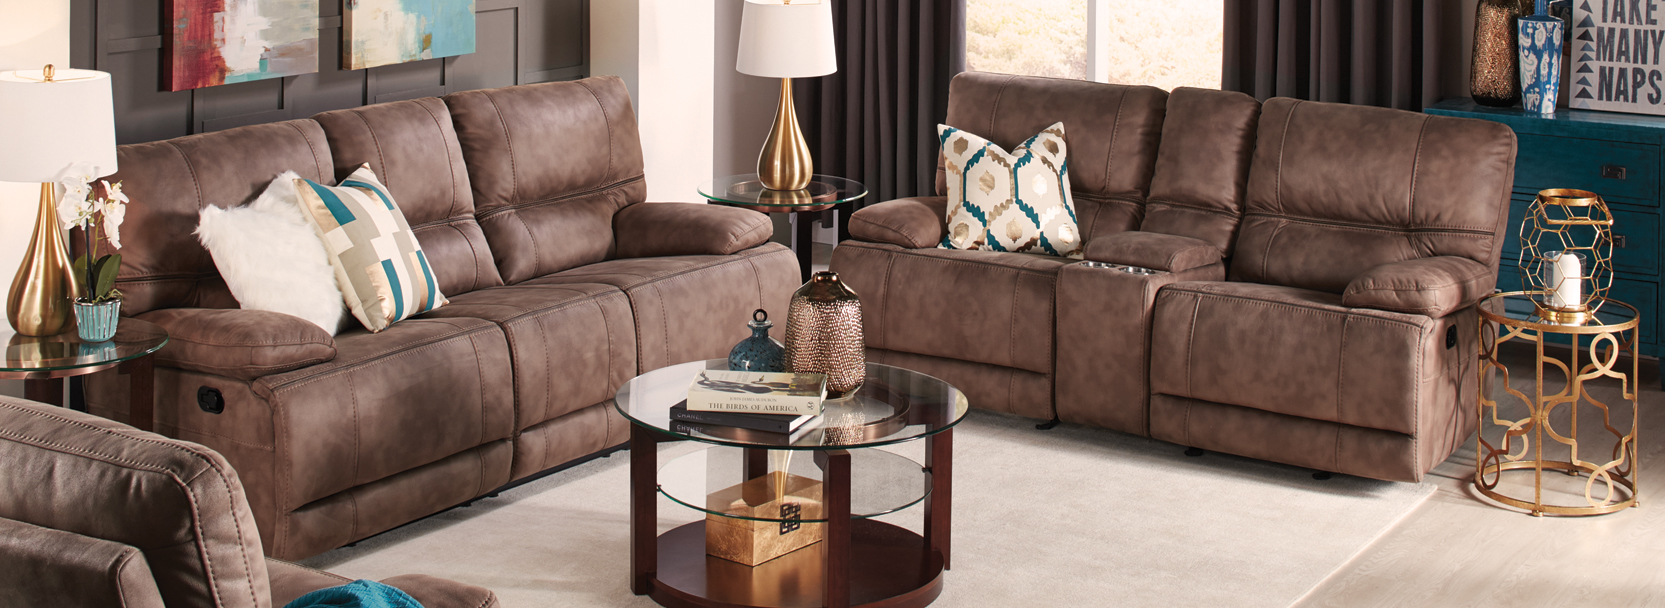 Living Room Sets San Diego awesome 70+ living room sets san diego decorating design of san